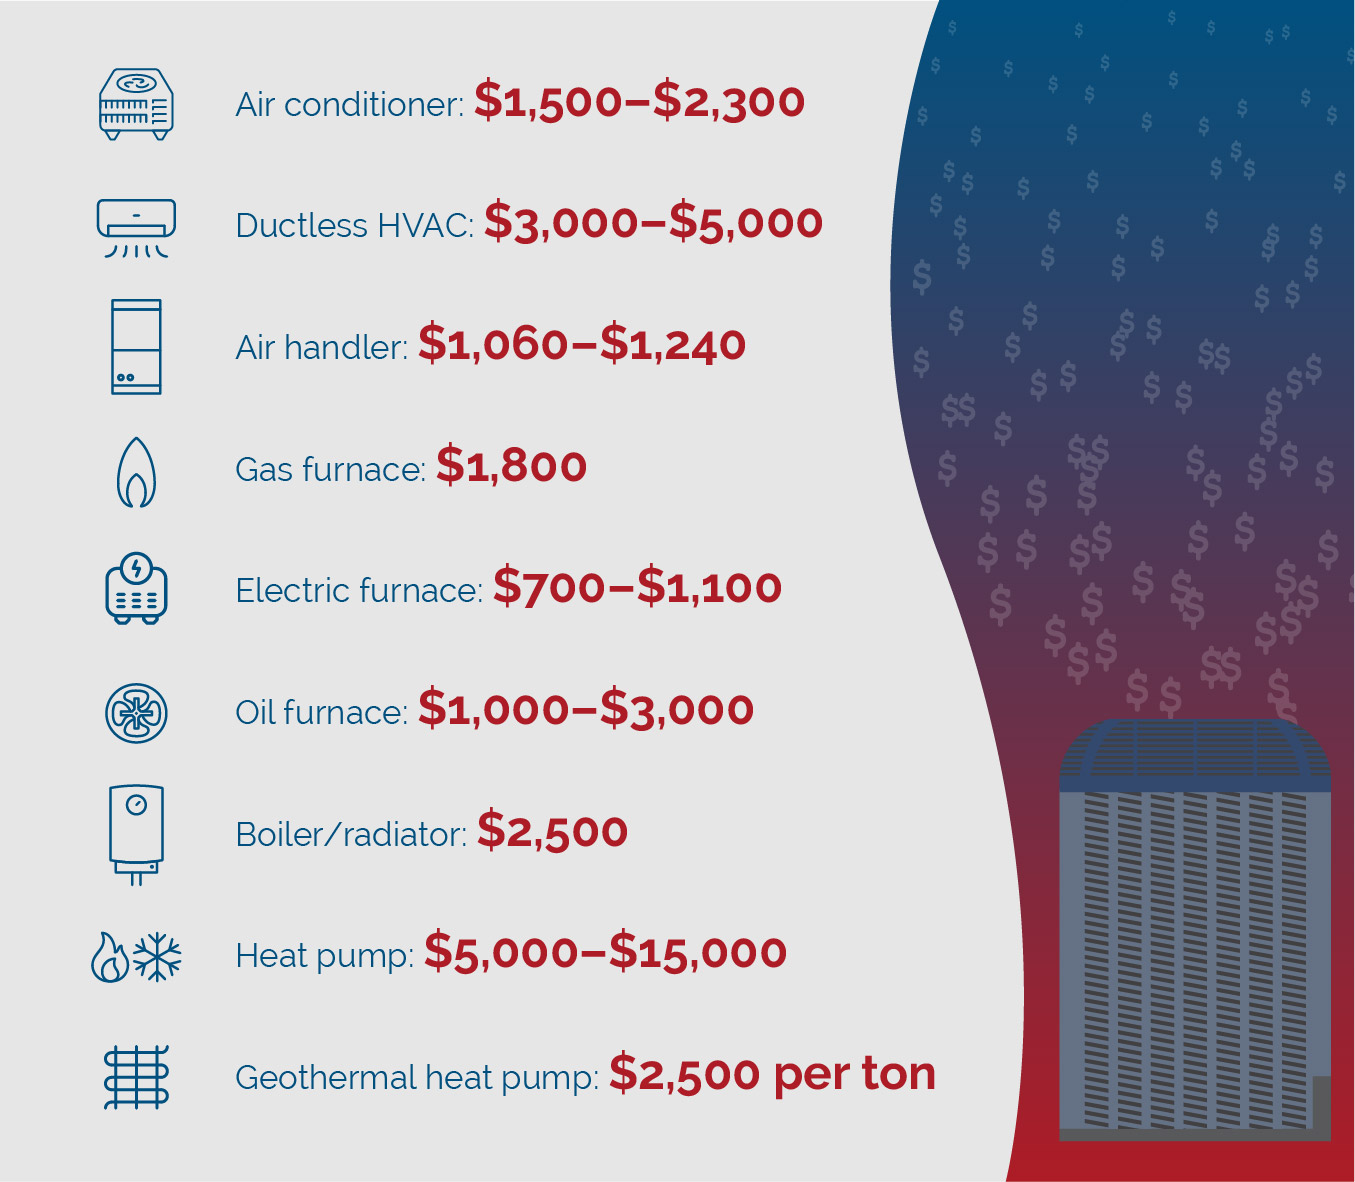 HVAC equipment cost graphic